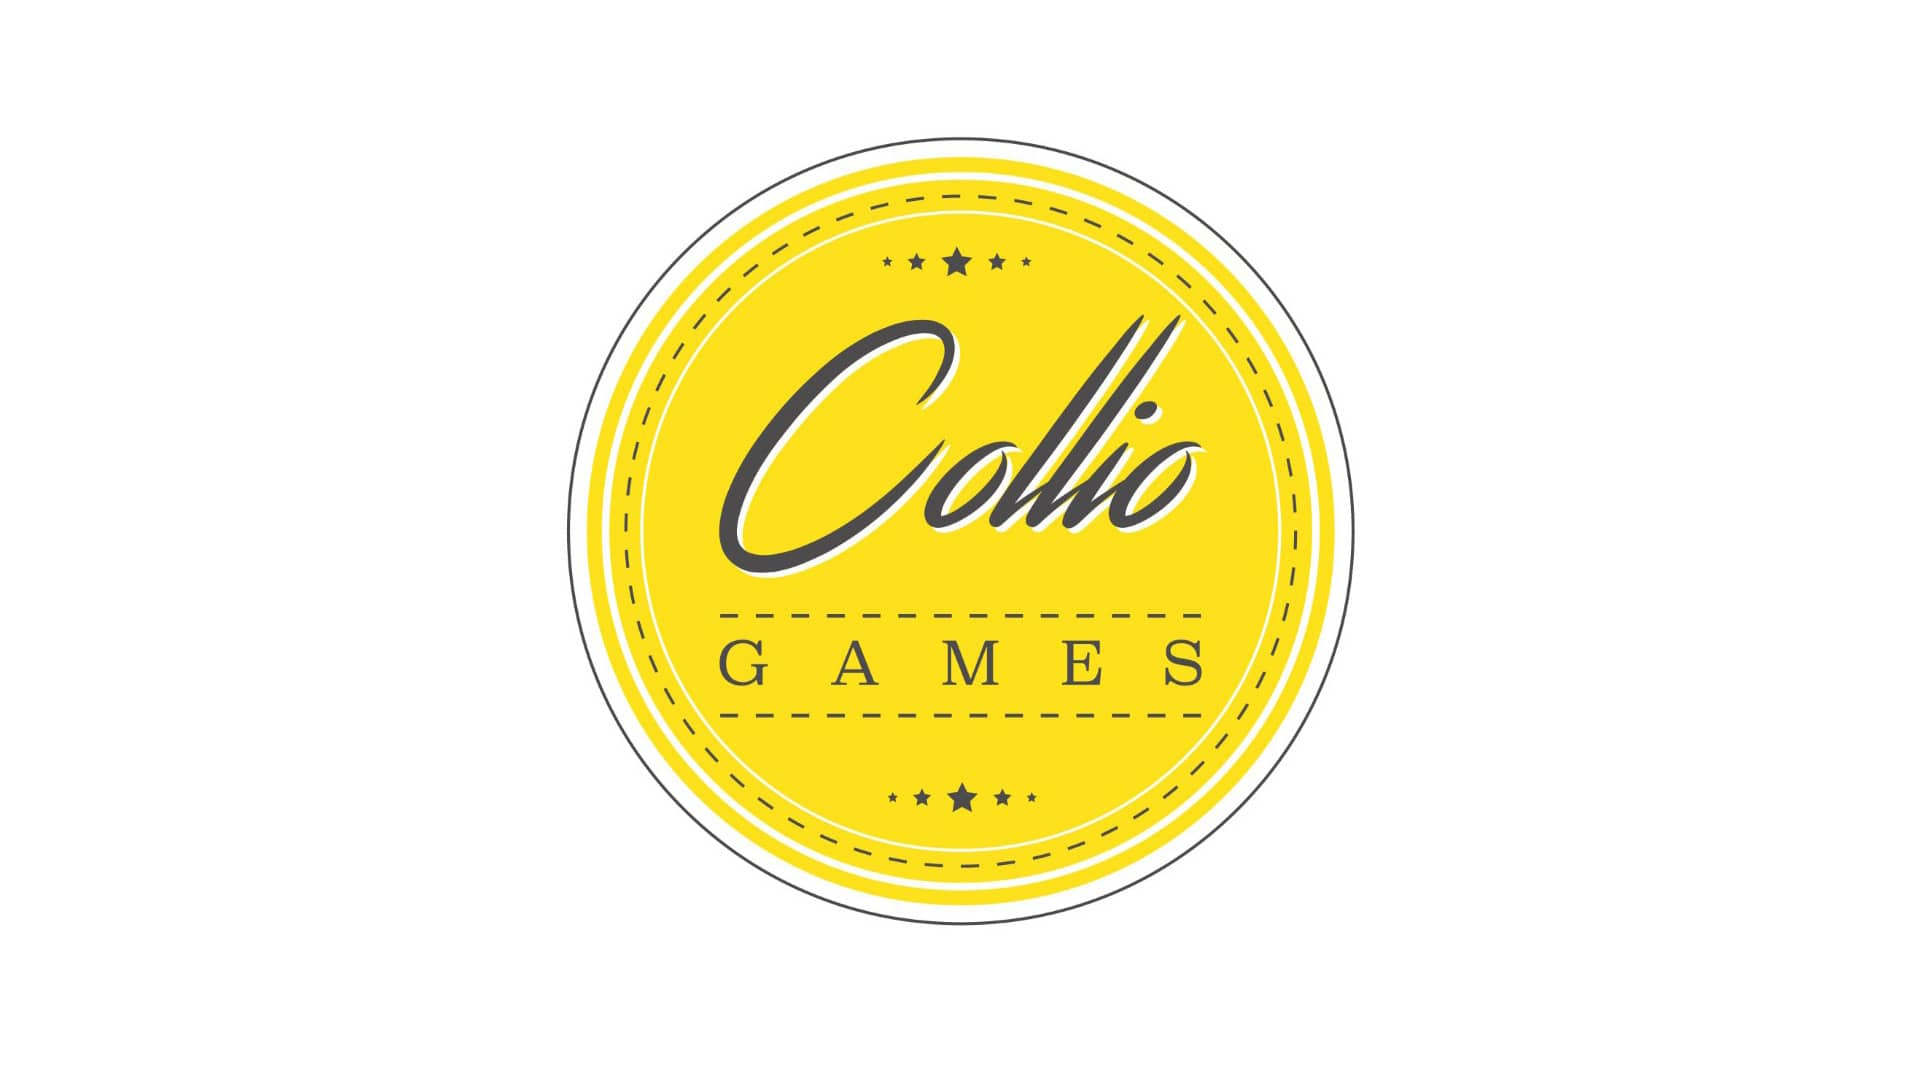 Collio Games